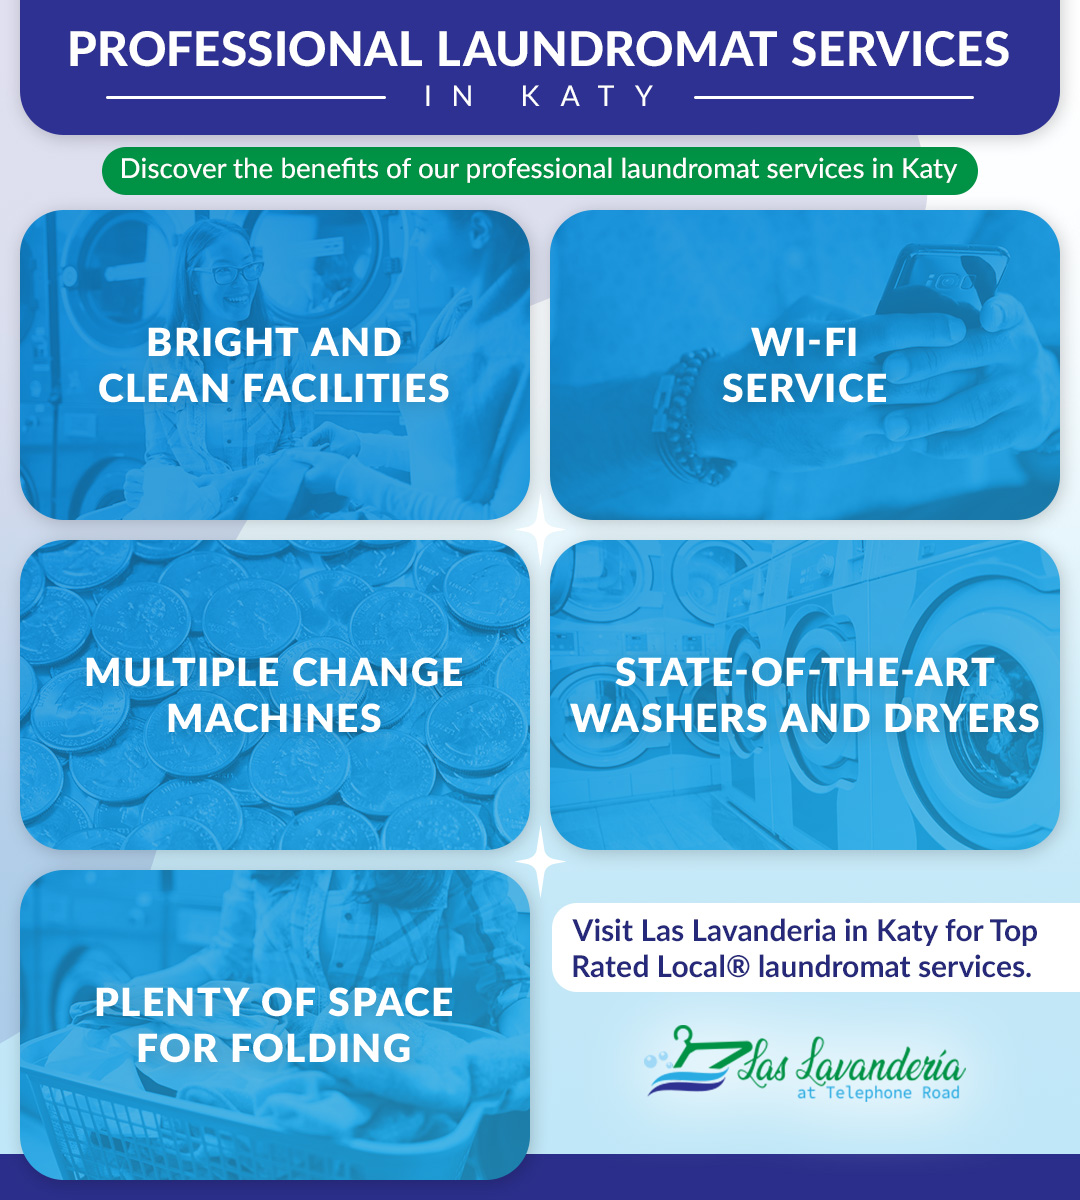 Professional Laundromate Services in Katy - Infographic